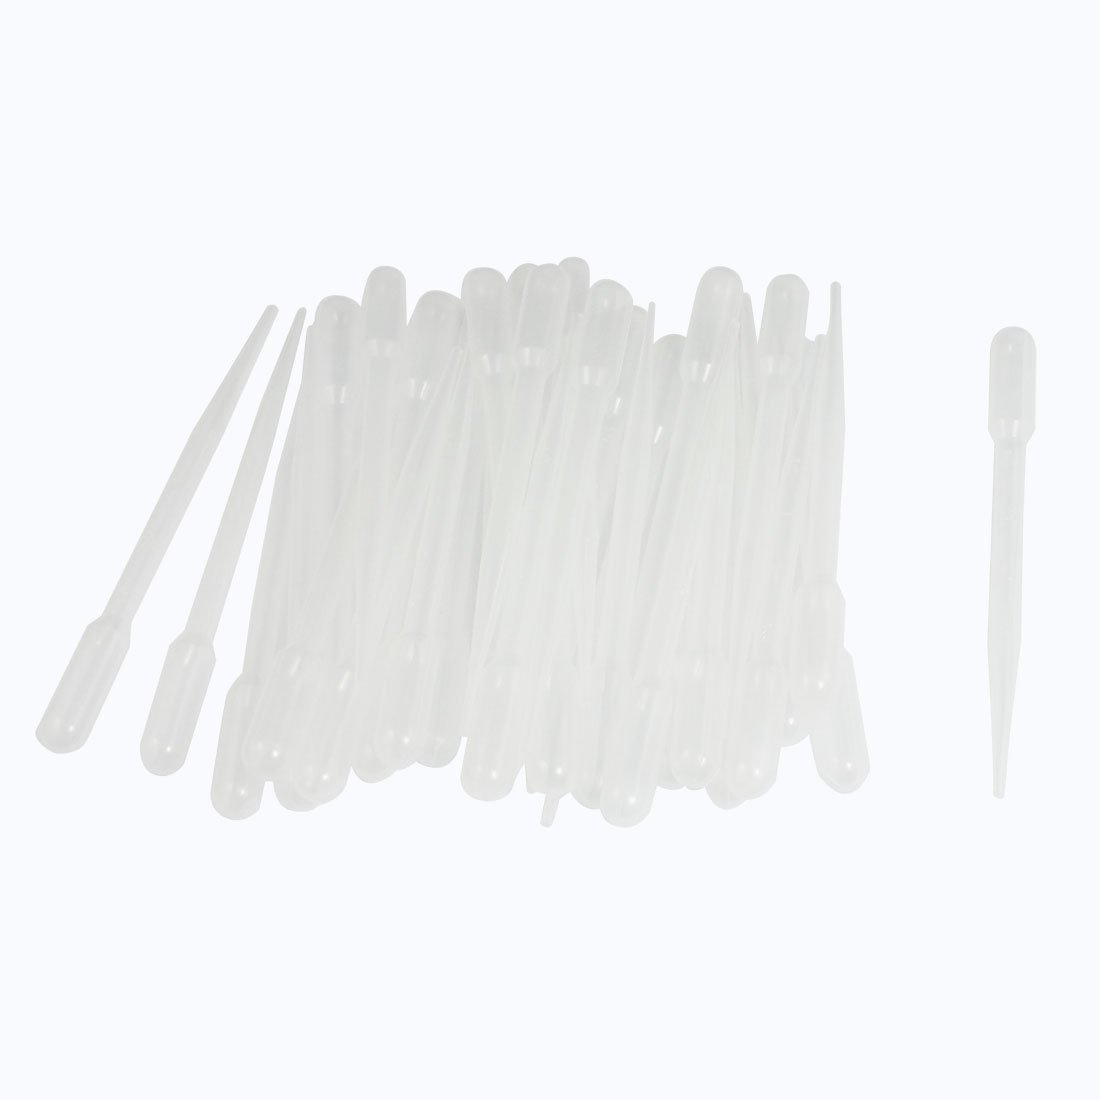 "50 Pcs Clear White Plastic 5.3"" Long Liquid Dropper Pasteur Pipette 2ml"